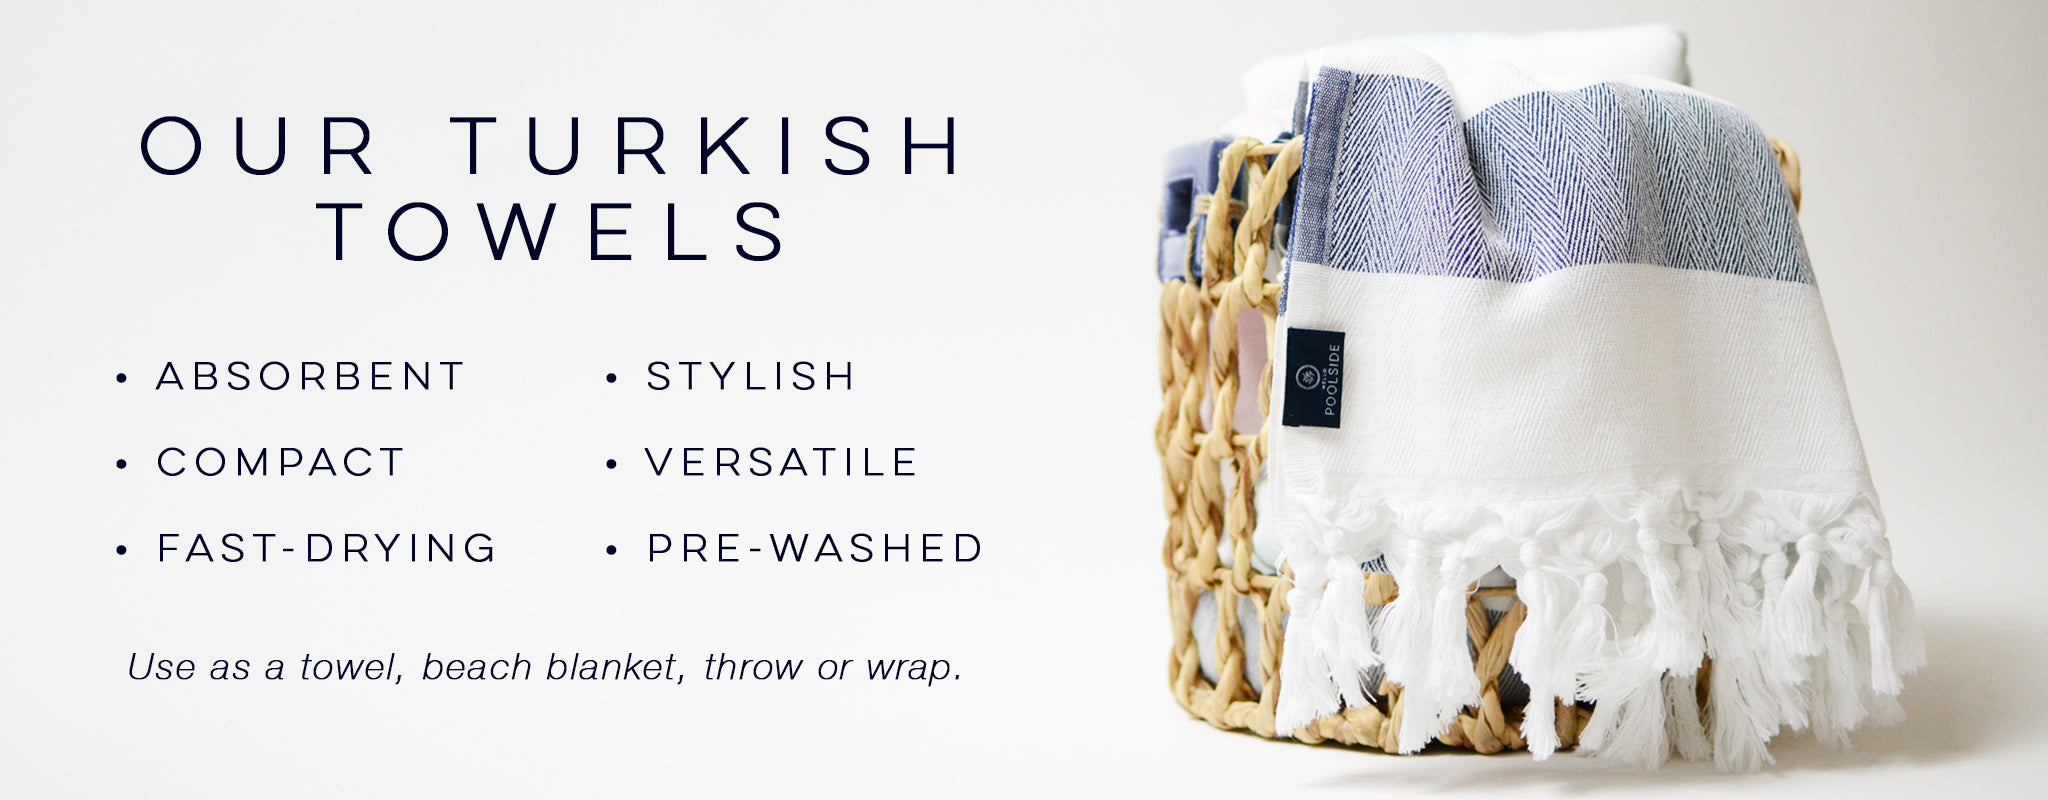 Absorbent, Compact, Stylish. Fast-Drying, Light Weight, Luxurious, Versatile, Pre-Washed, Turkish Towels, beach blanket, throw, wrap